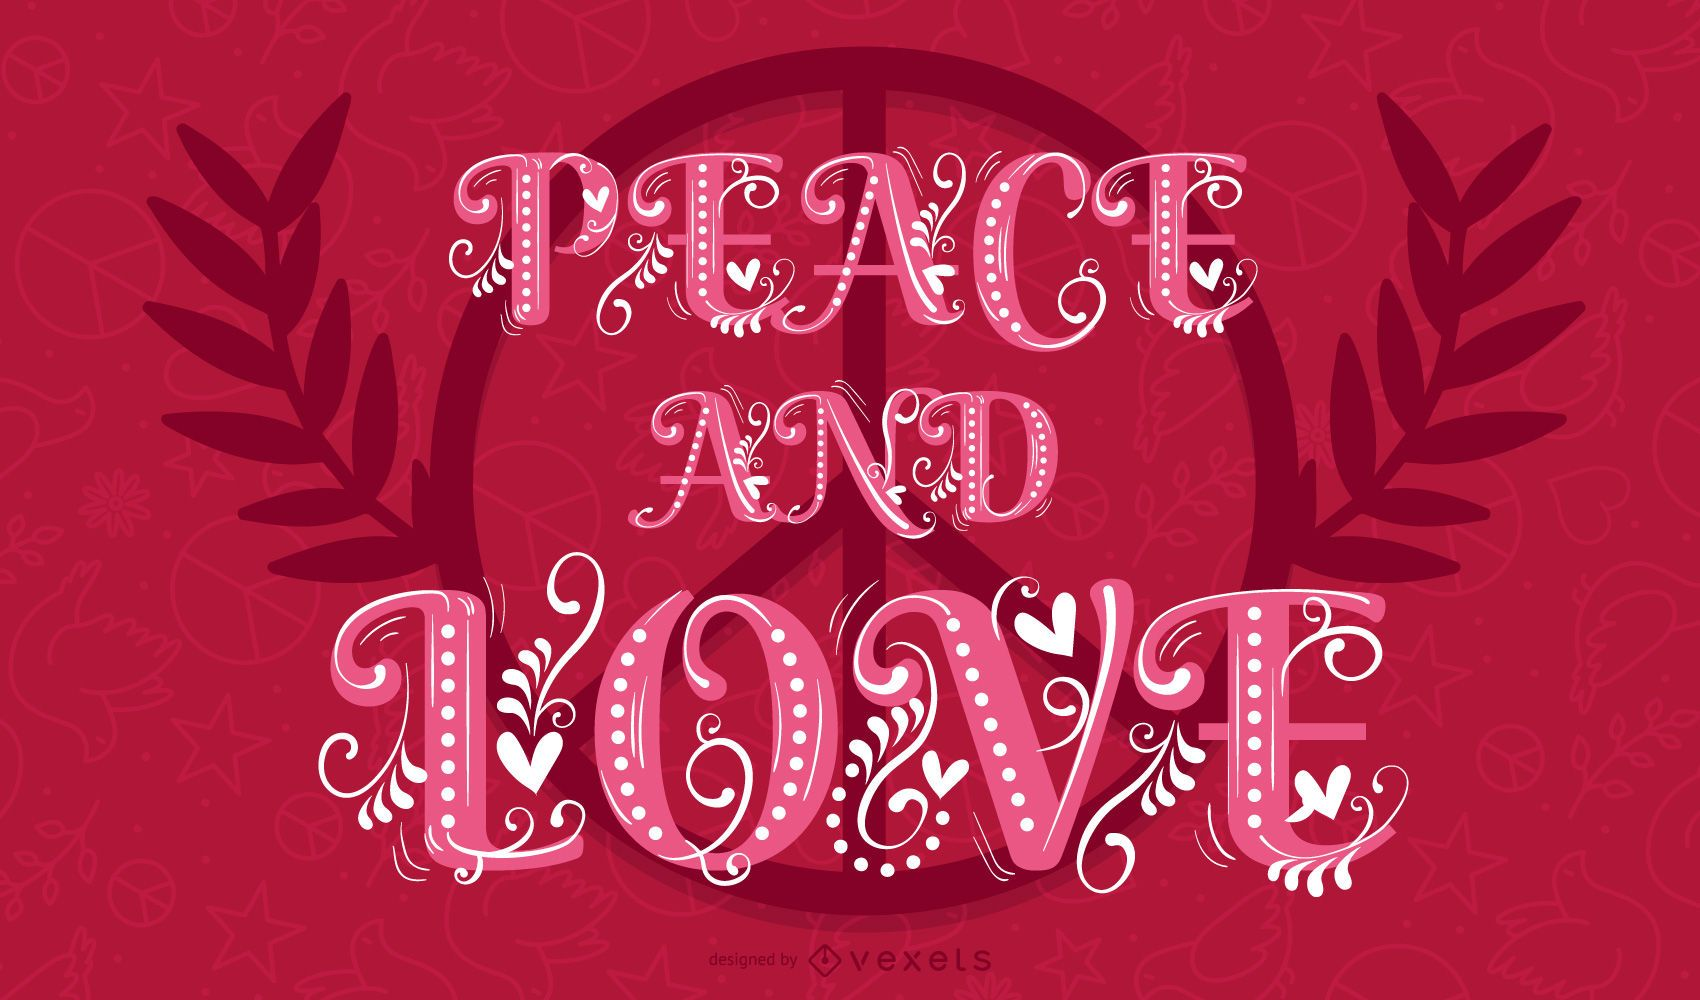 Heart of peace and love